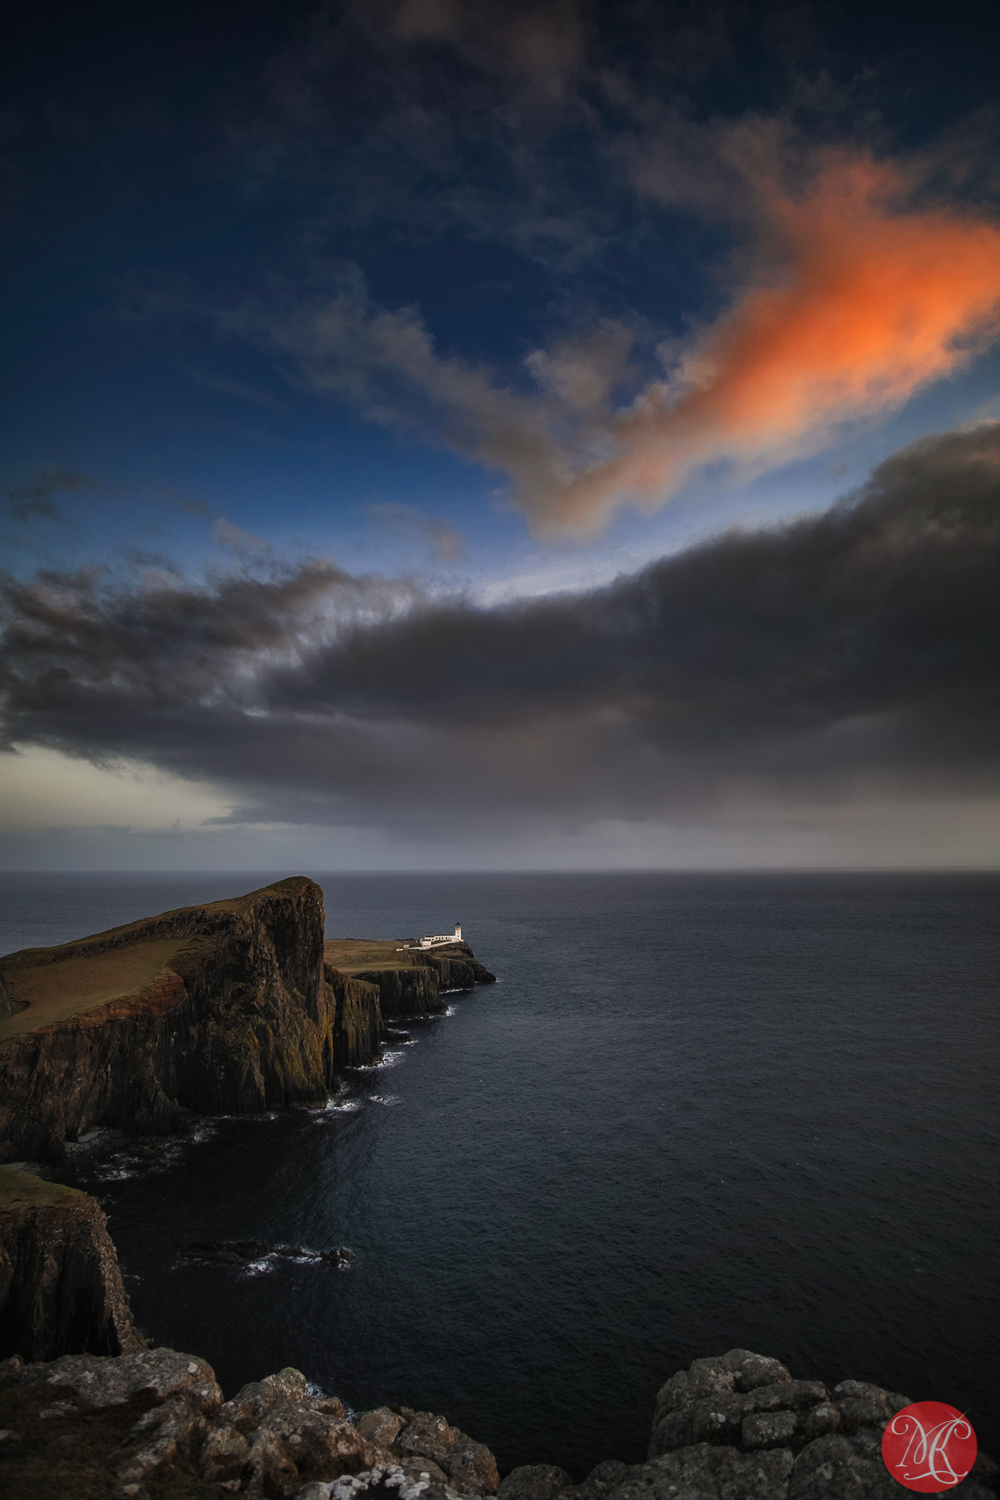 The night is coming to the Neist Point